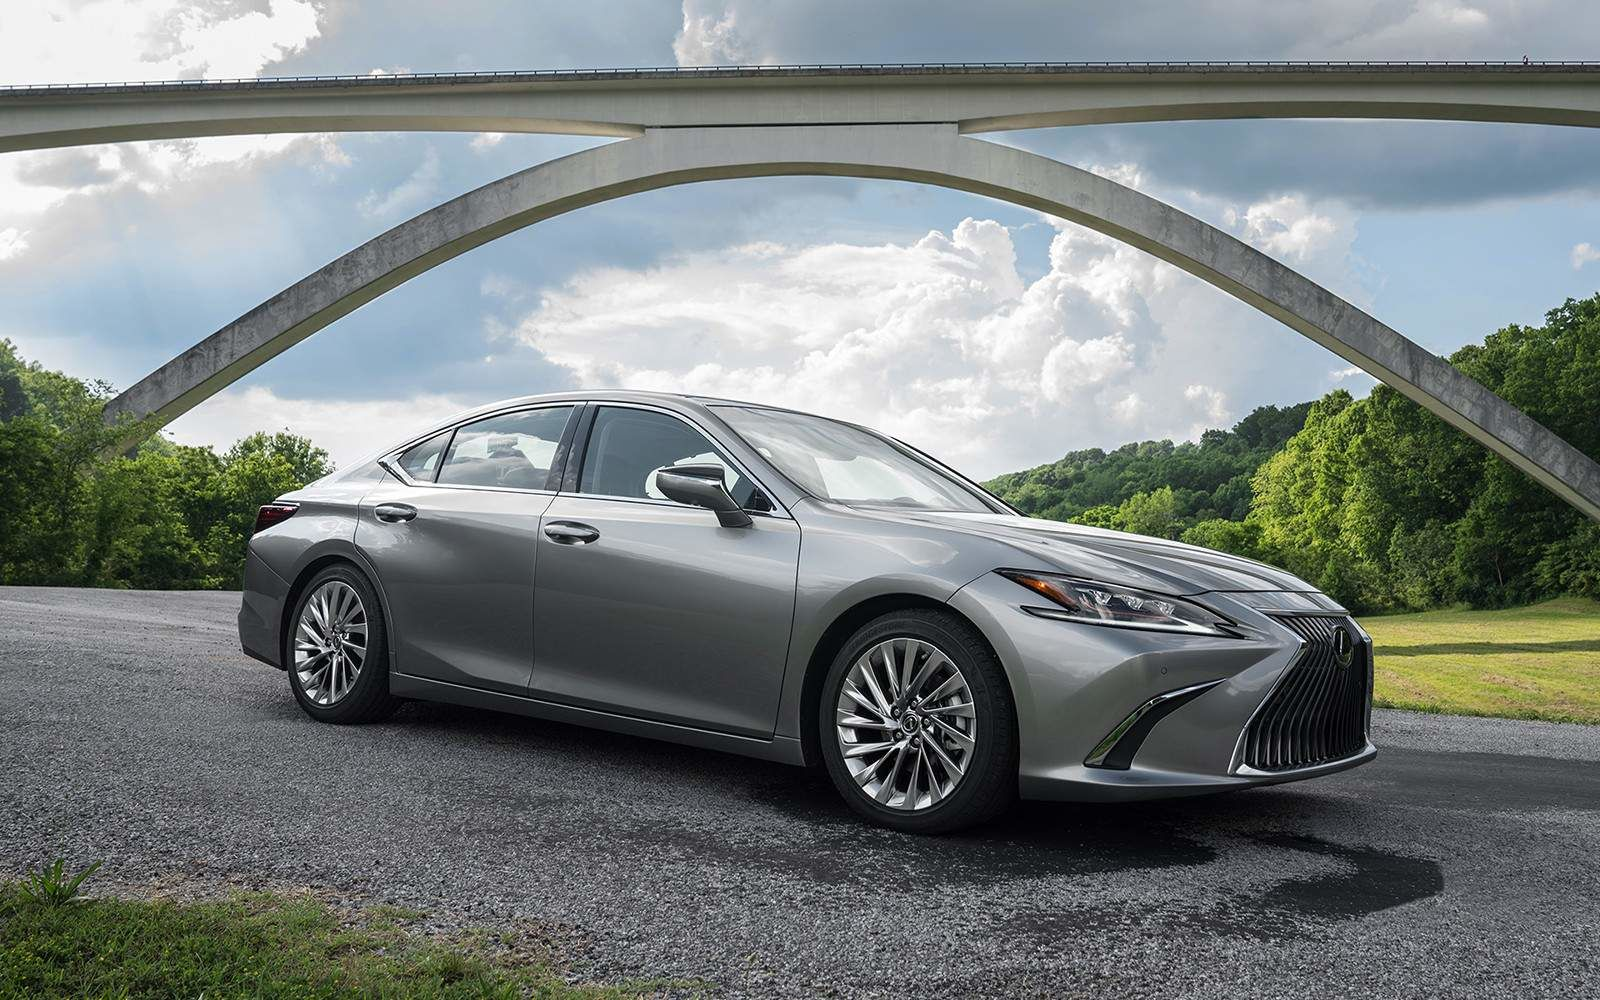 Lexus 2020 Es 350 Ultra Luxury Atomic Silver L